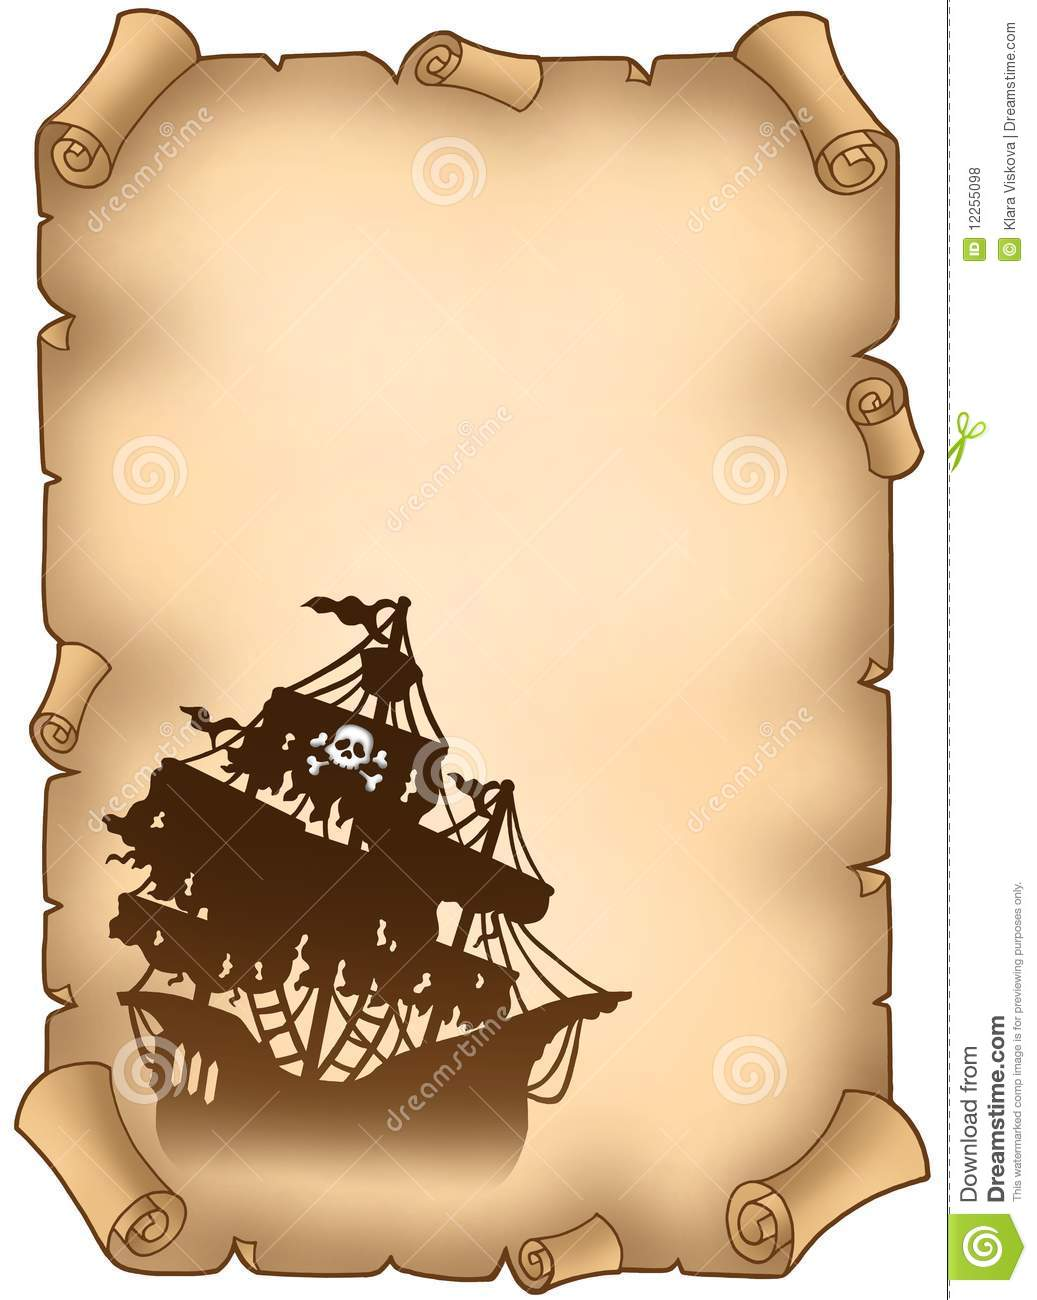 Old Scroll With Mysterious Pirate Ship Stock Illustration - Best of ancient scroll template ideas